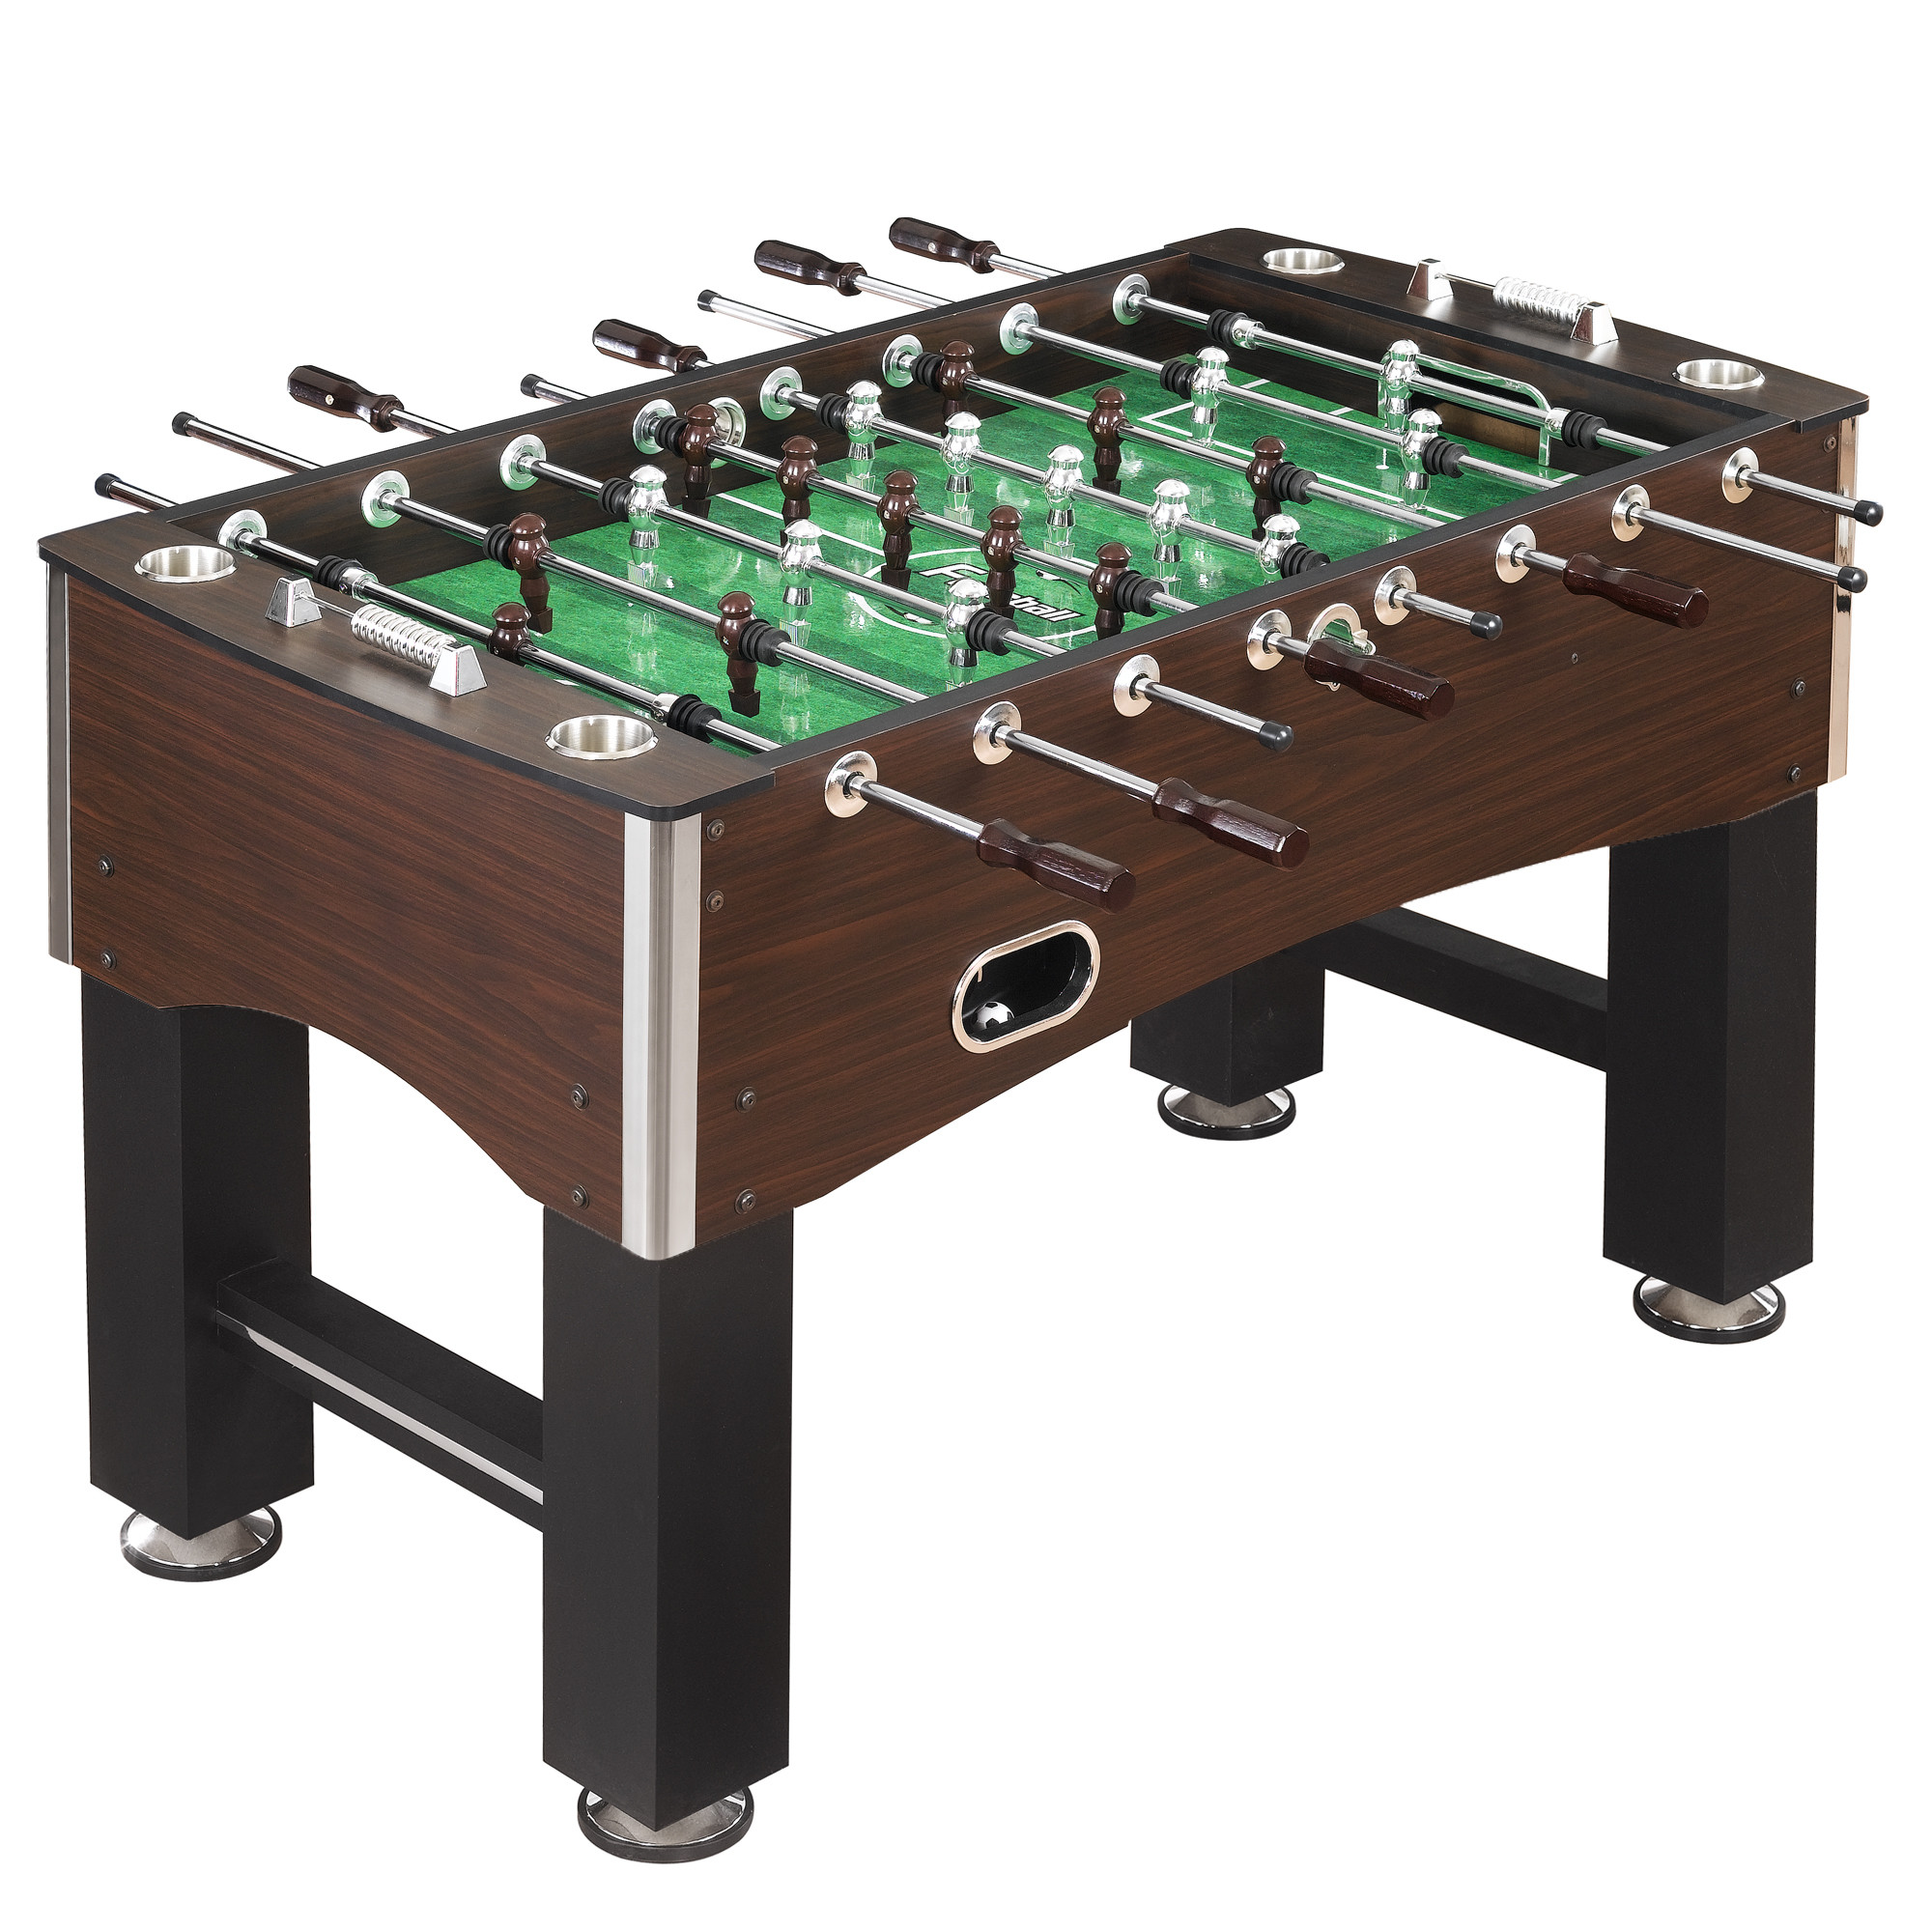 Hathaway Primo Foosball Table, 56-in, Wood Grain Finish